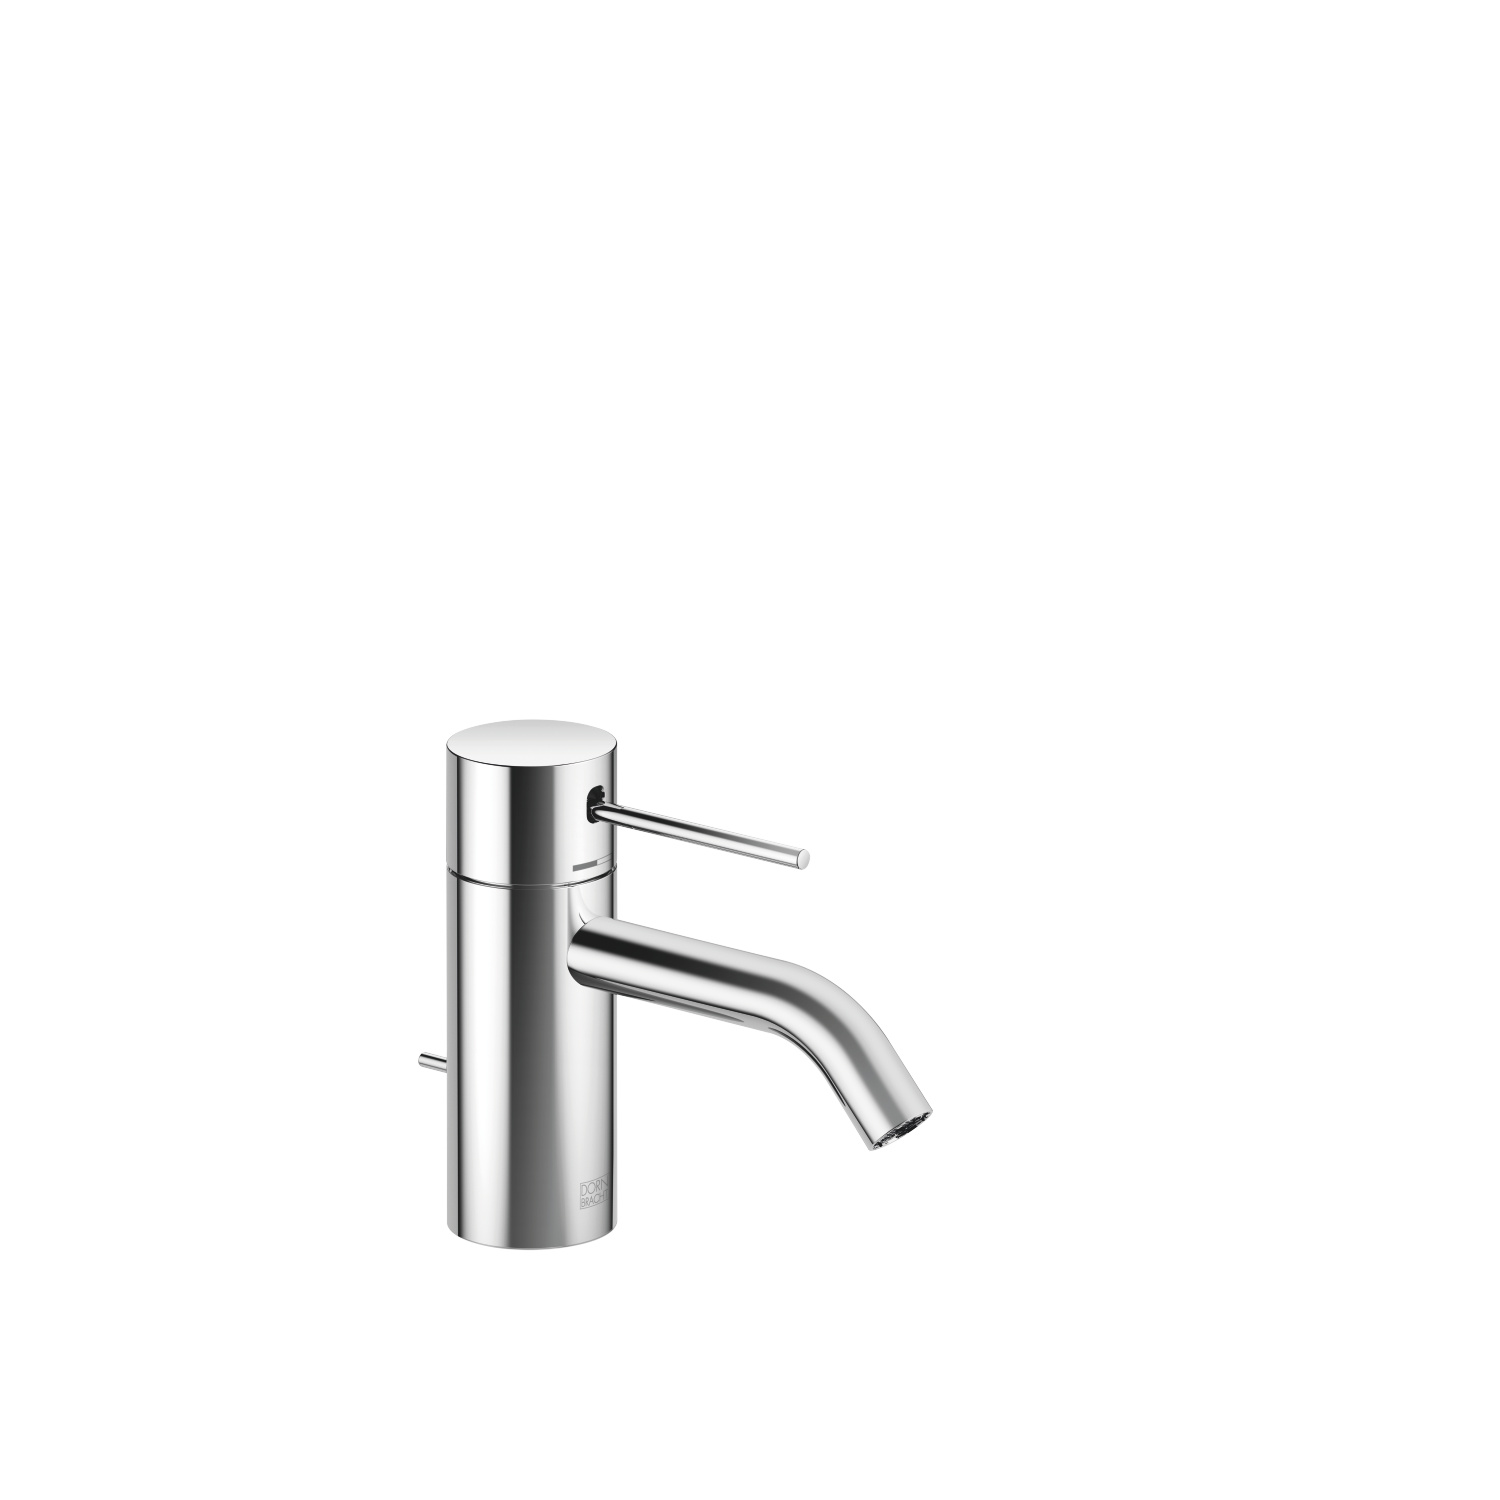 META SLIM Single-lever basin mixer with pop-up waste - polished chrome